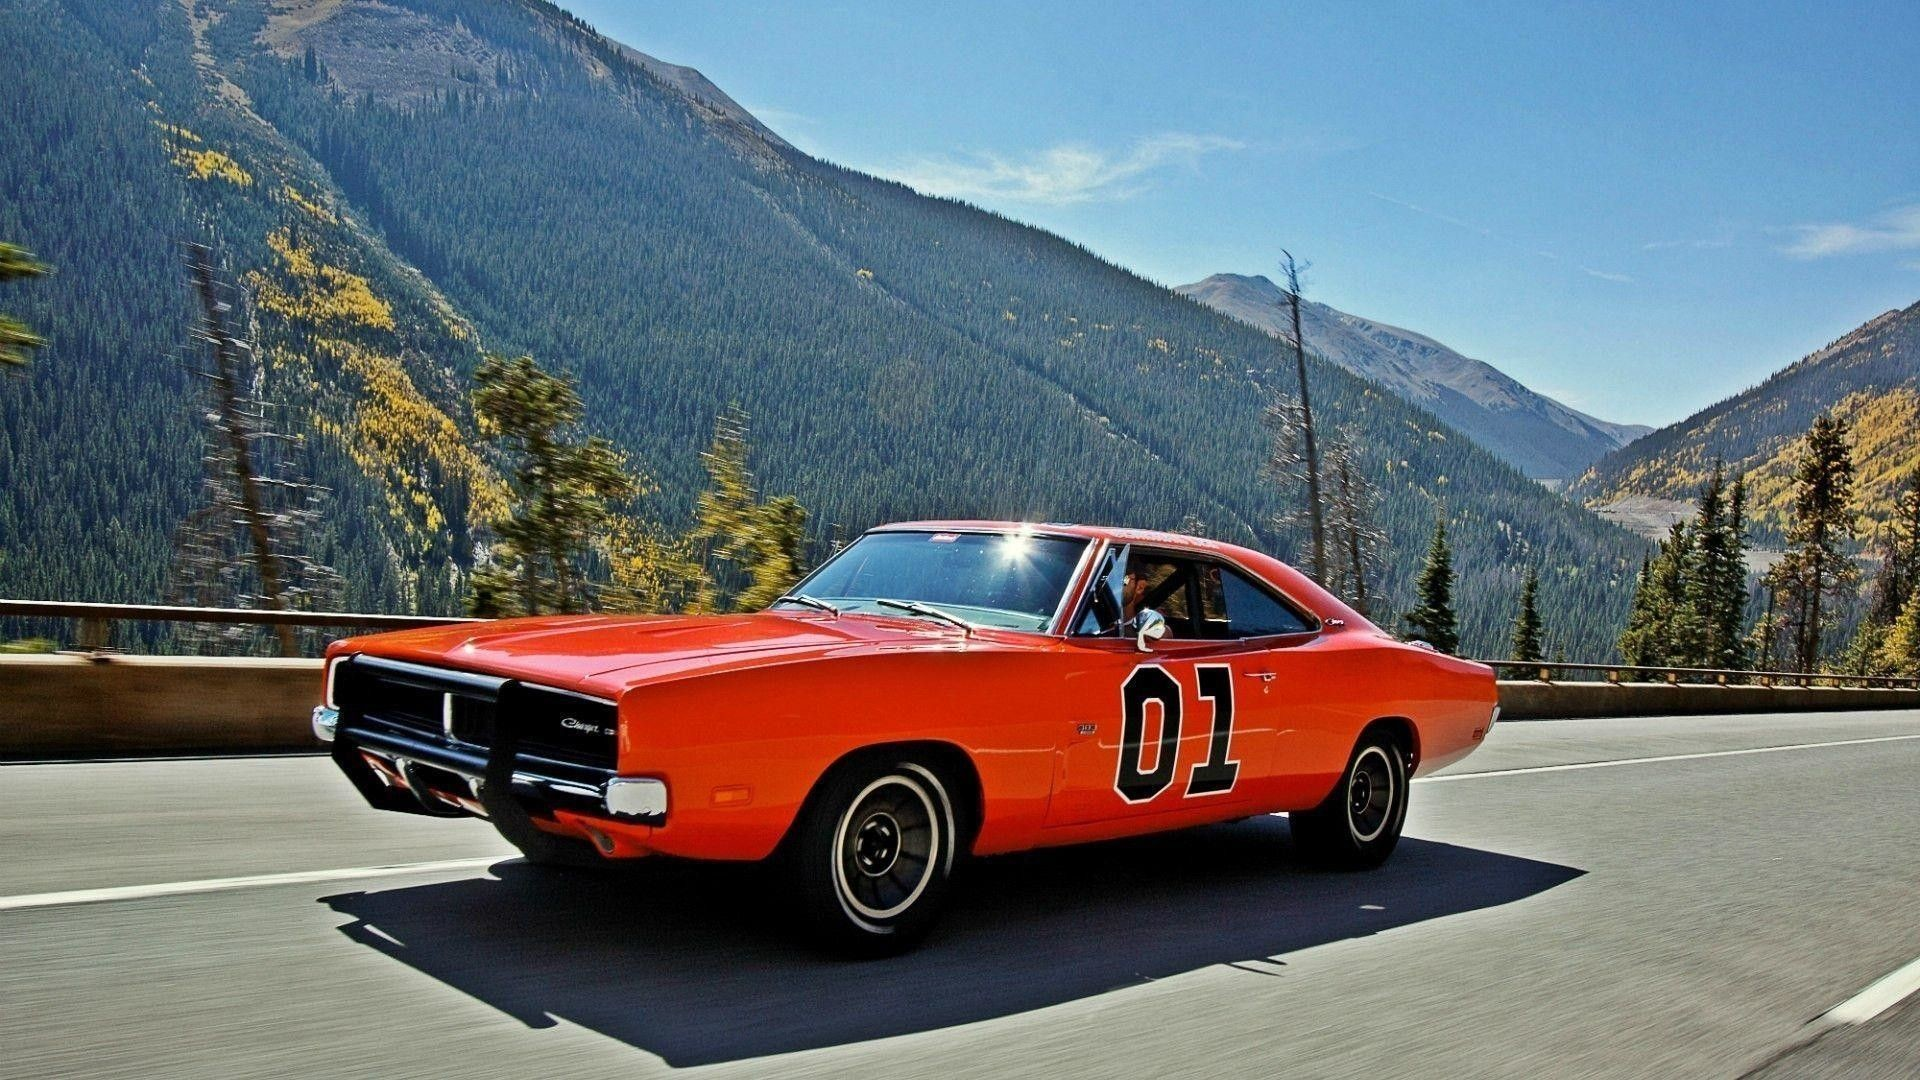 1920x1080 General Lee Wallpaper (59+ images)